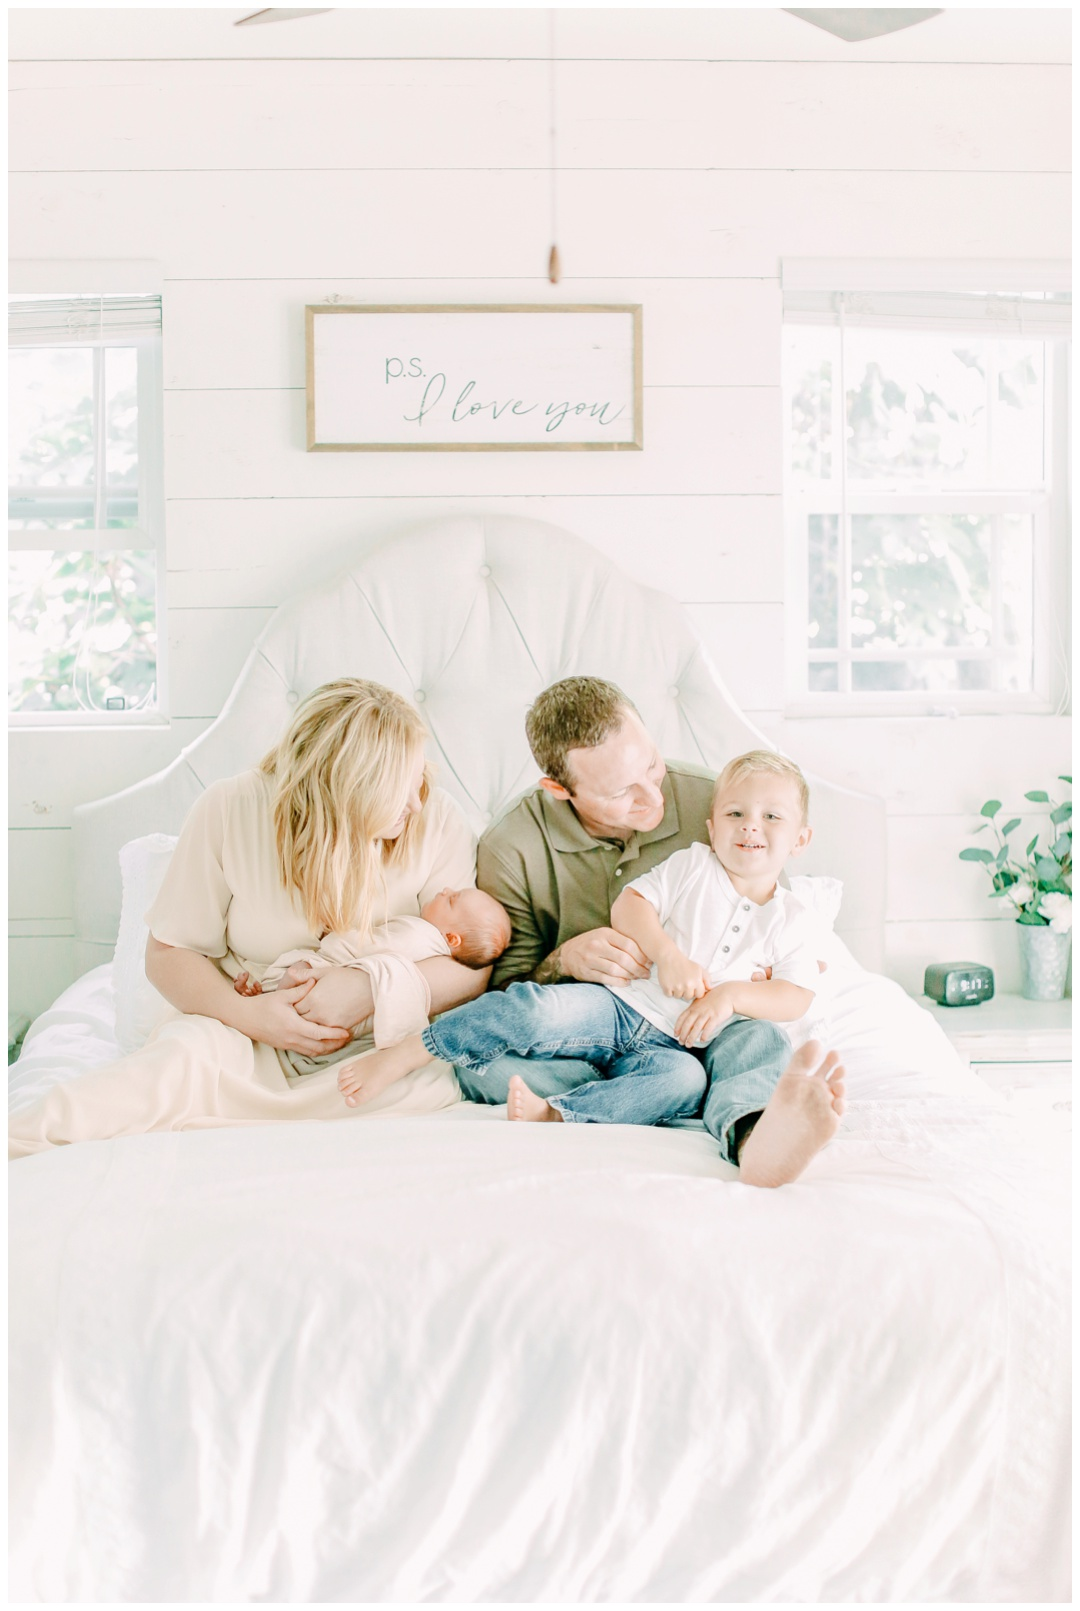 The_Fennesy_Family_Newport_Beach_Lifestyle_Family_Photographer_Orange_County_Family_Photography_Cori_Kleckner_Photography_Orange_County_Newborn_Photographer_Family_Photos_Session__1389.jpg